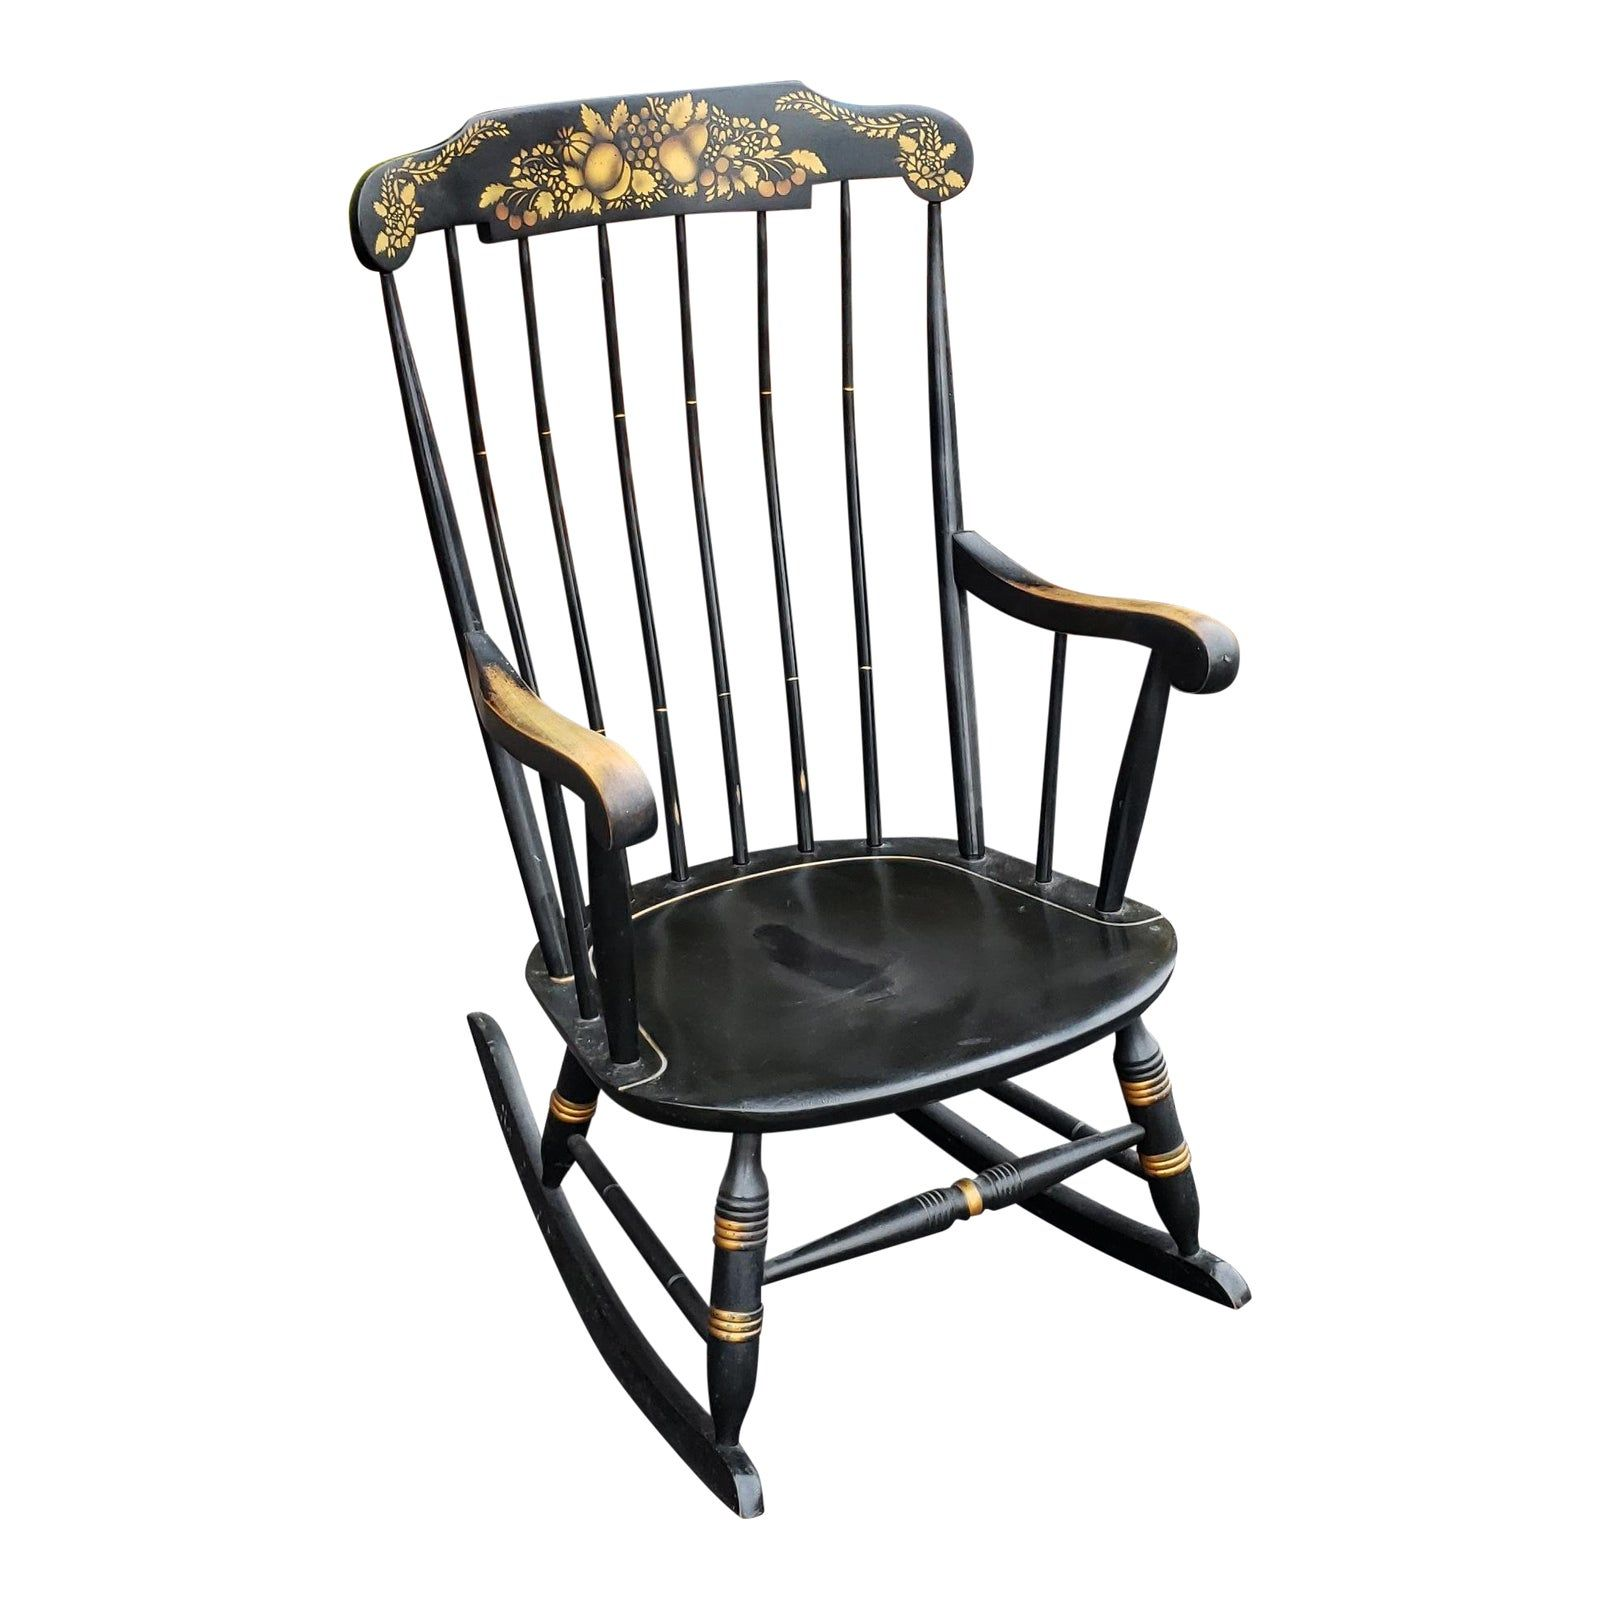 Vintage 1970s Black Hitchcock Style Painted Nichols Stone Co Rocking Chair Rocker In 2020 Nichols And Stone Rocking Chair Antique Rocking Chairs